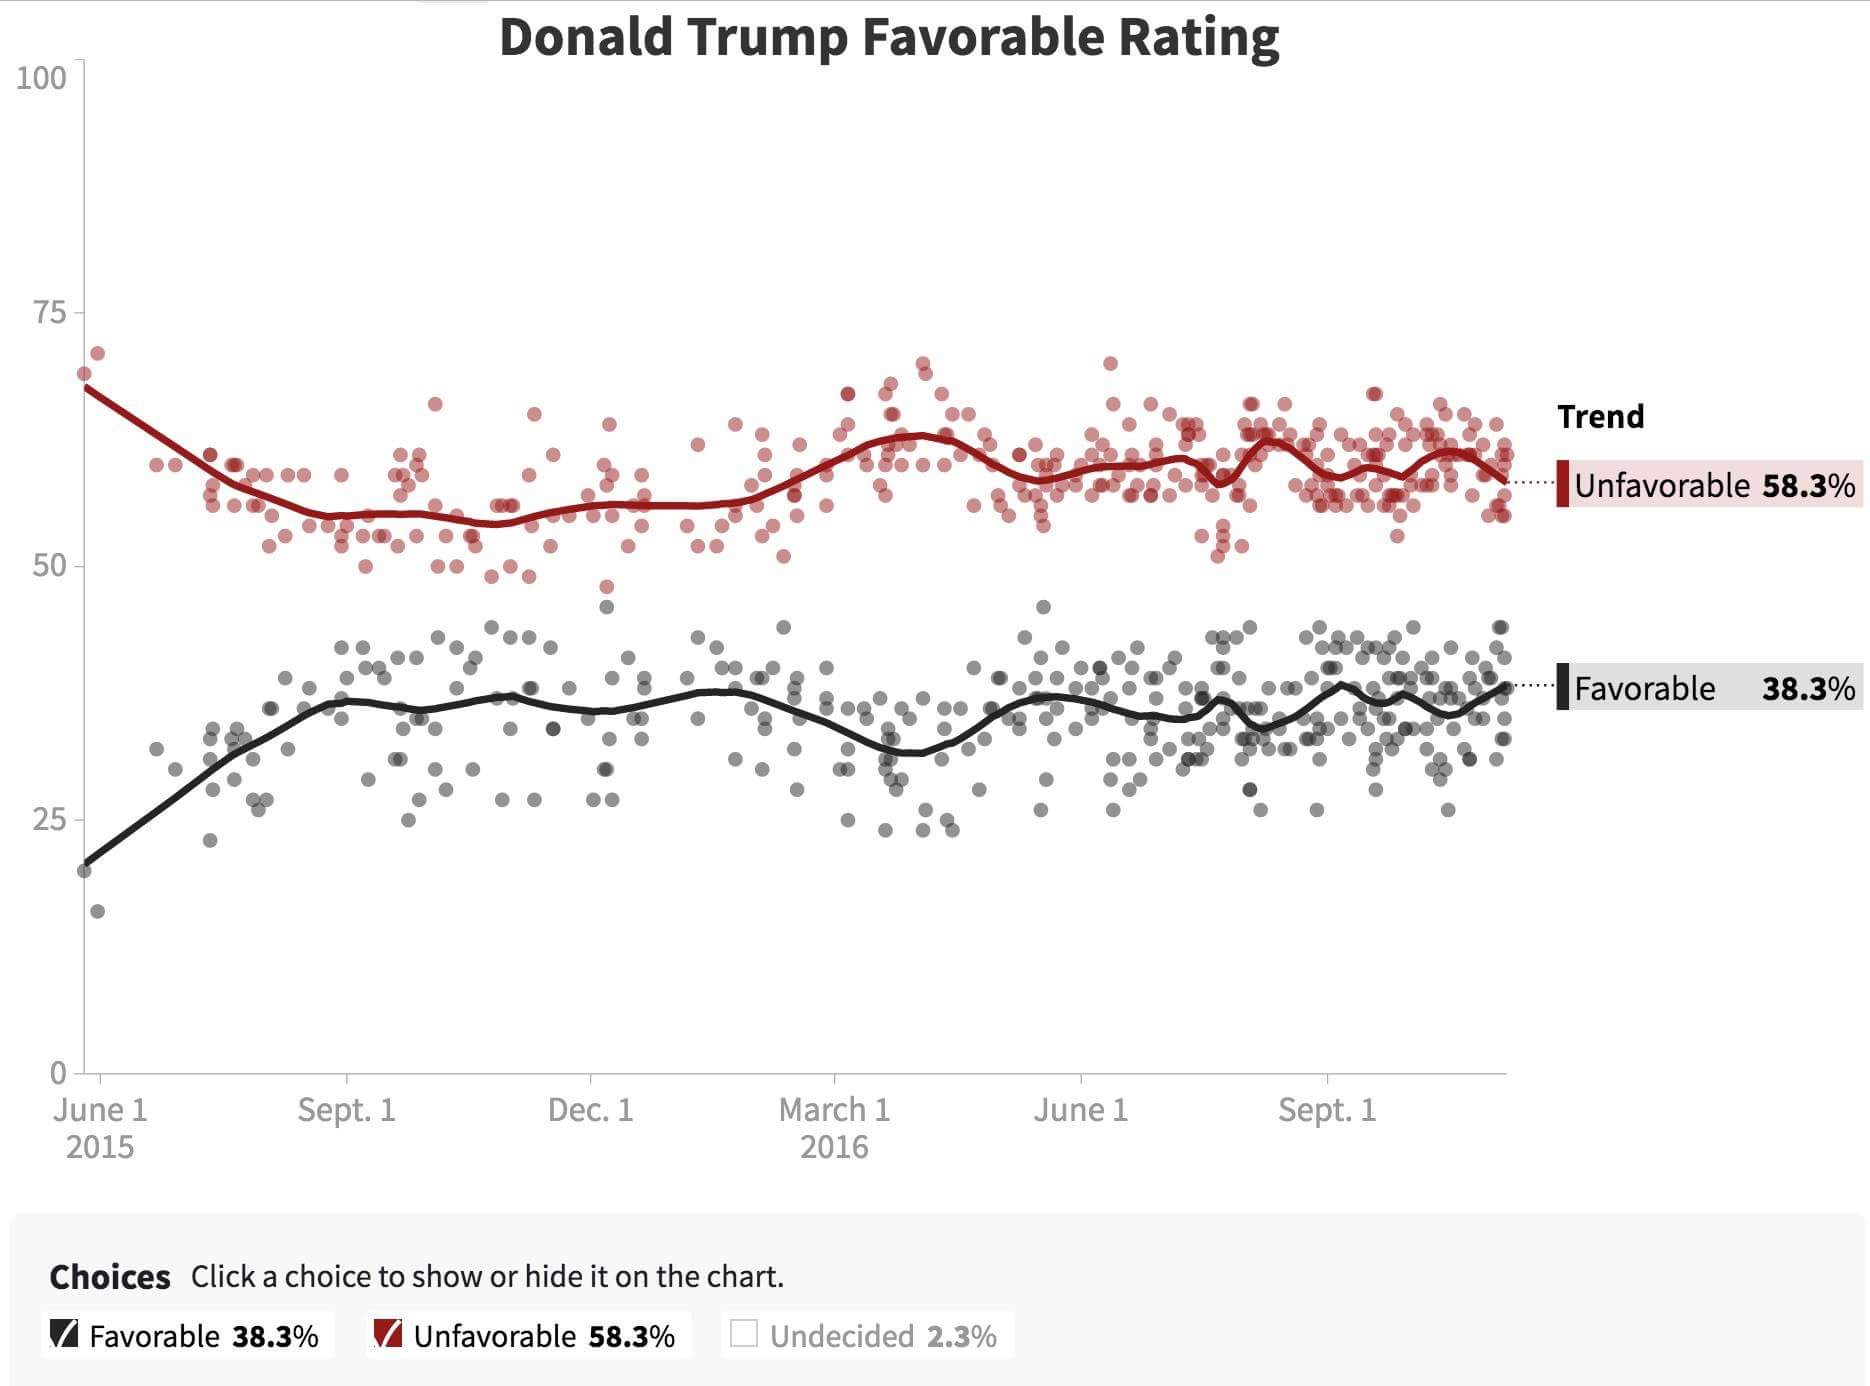 Trump's favorable rating has inched up to 38%.